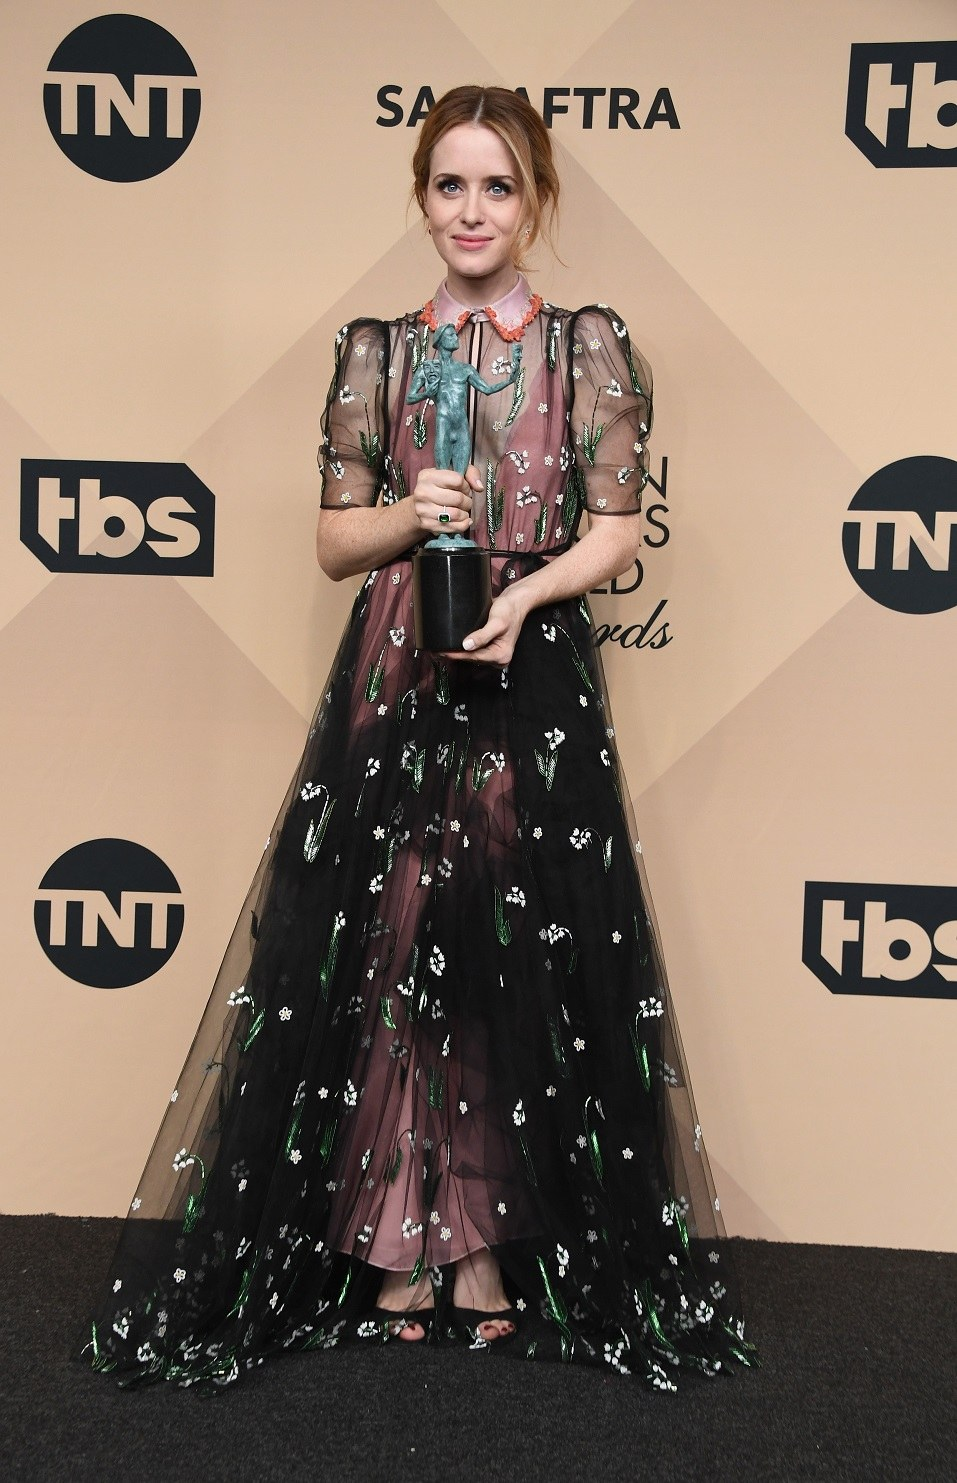 Actor Claire Foy winner of the Outstanding Performance by a Female Actor in a Drama Series